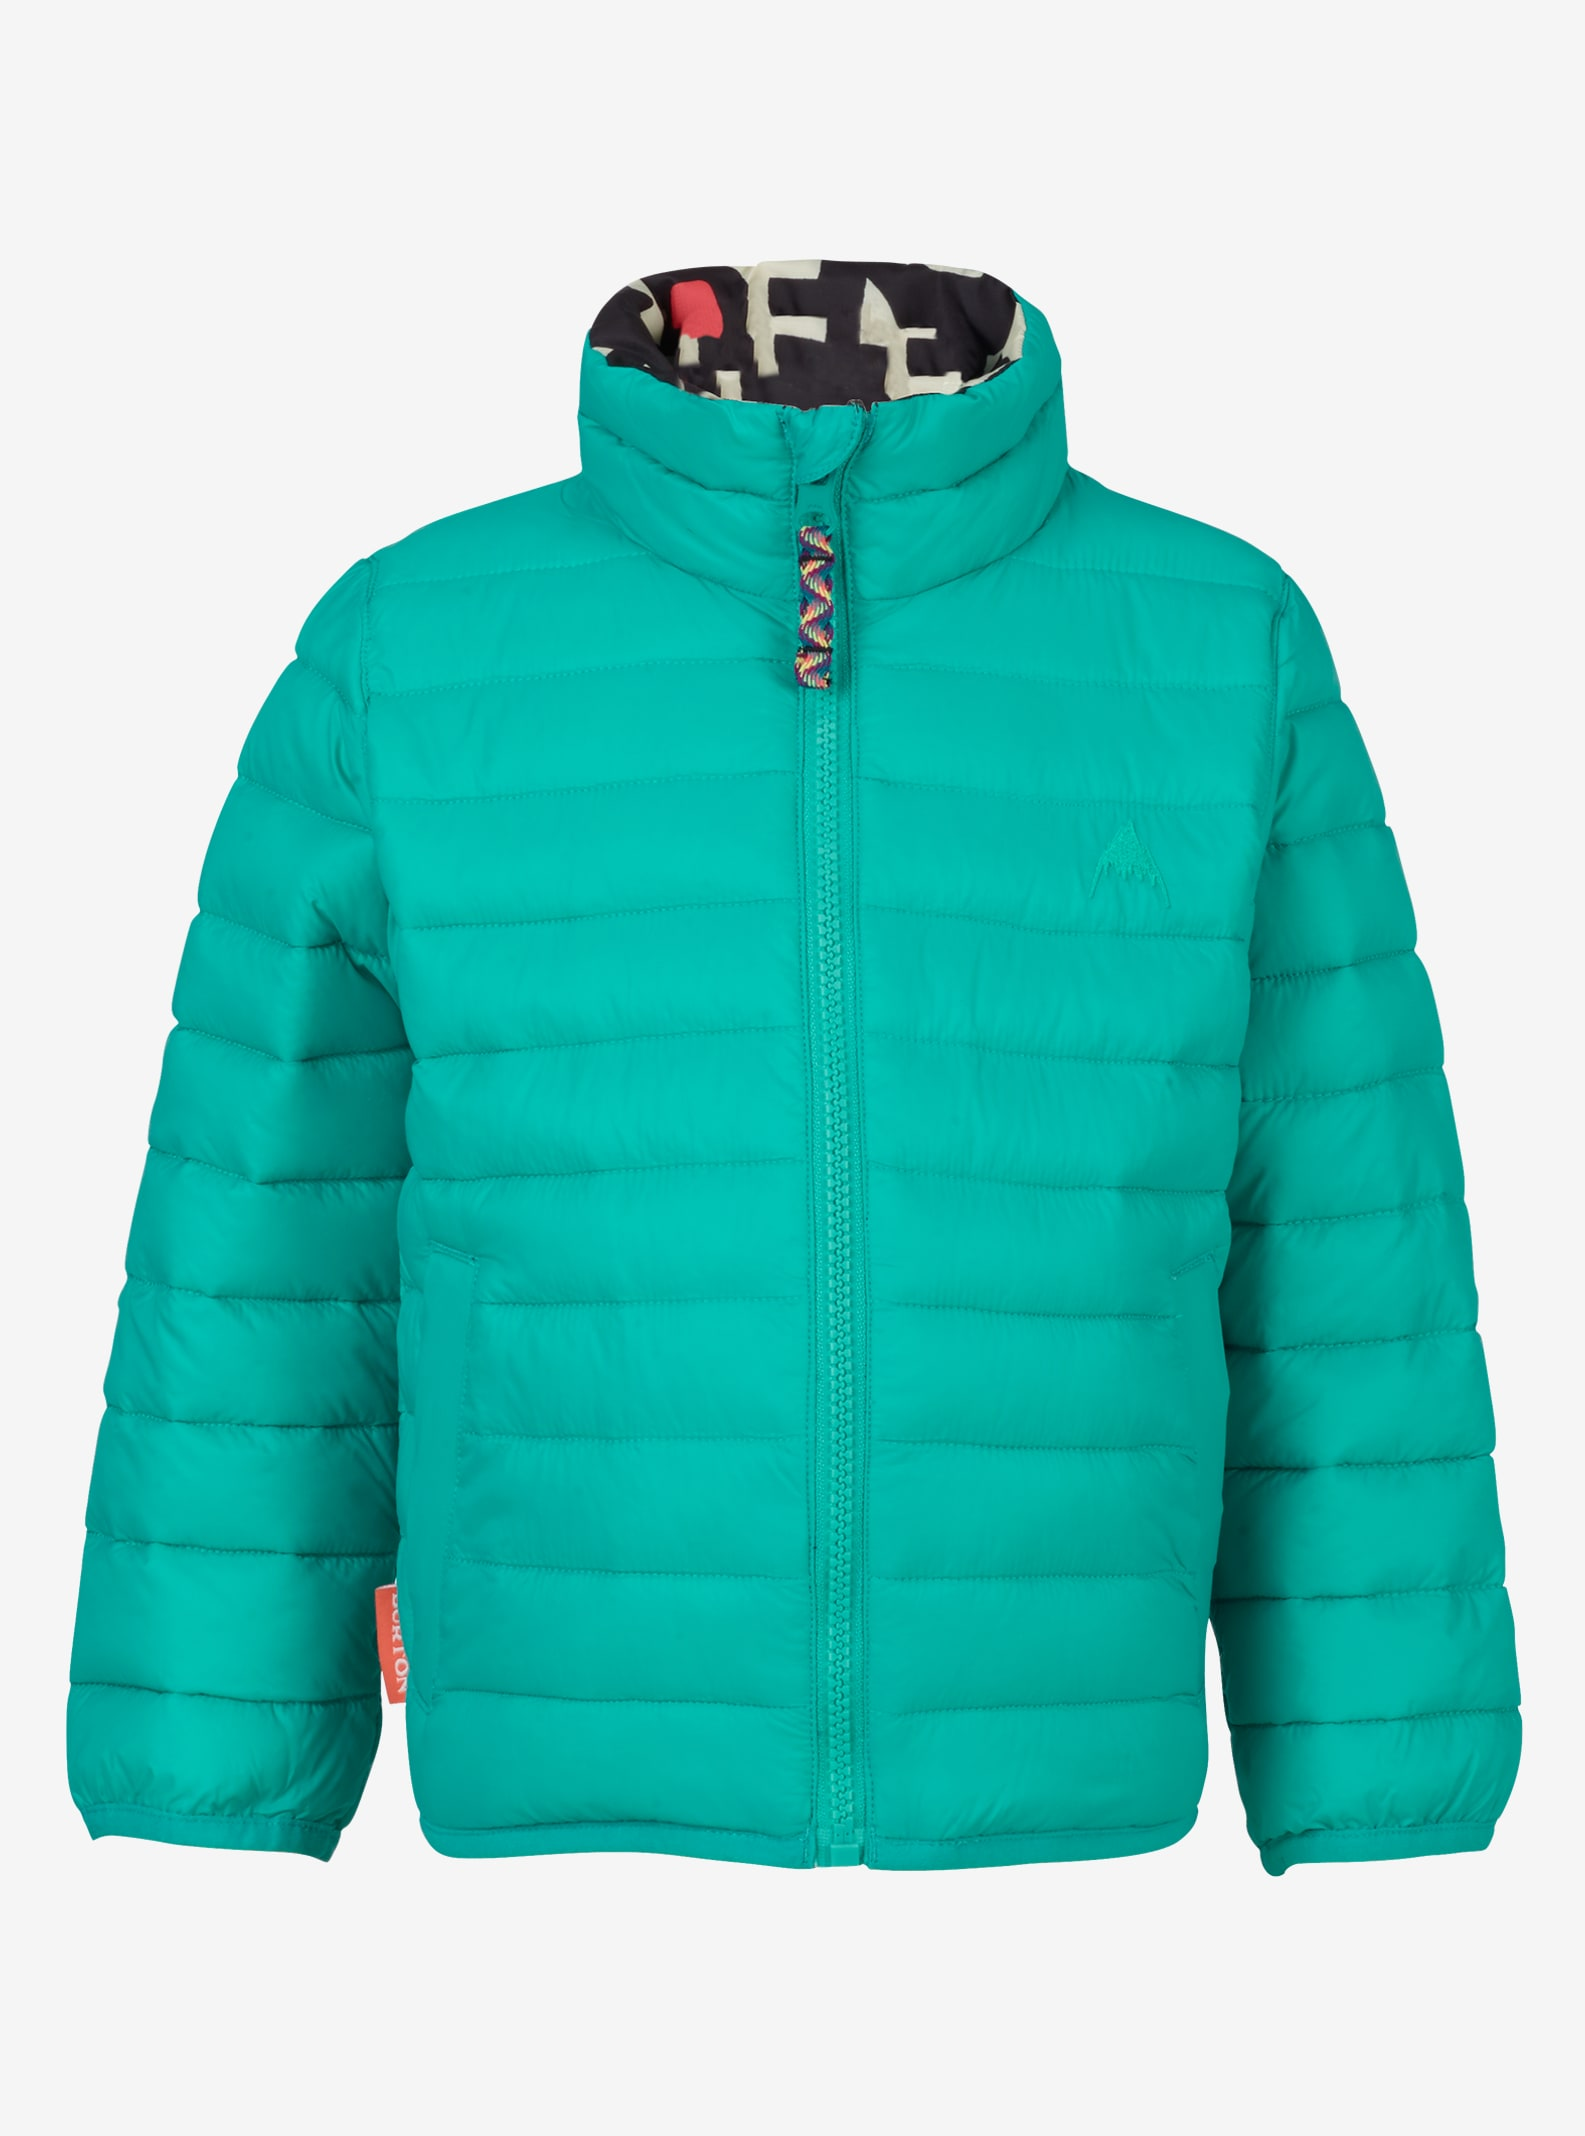 Kids' Burton Minishred Flex Puffy Jacket shown in Everglade / Young Folks